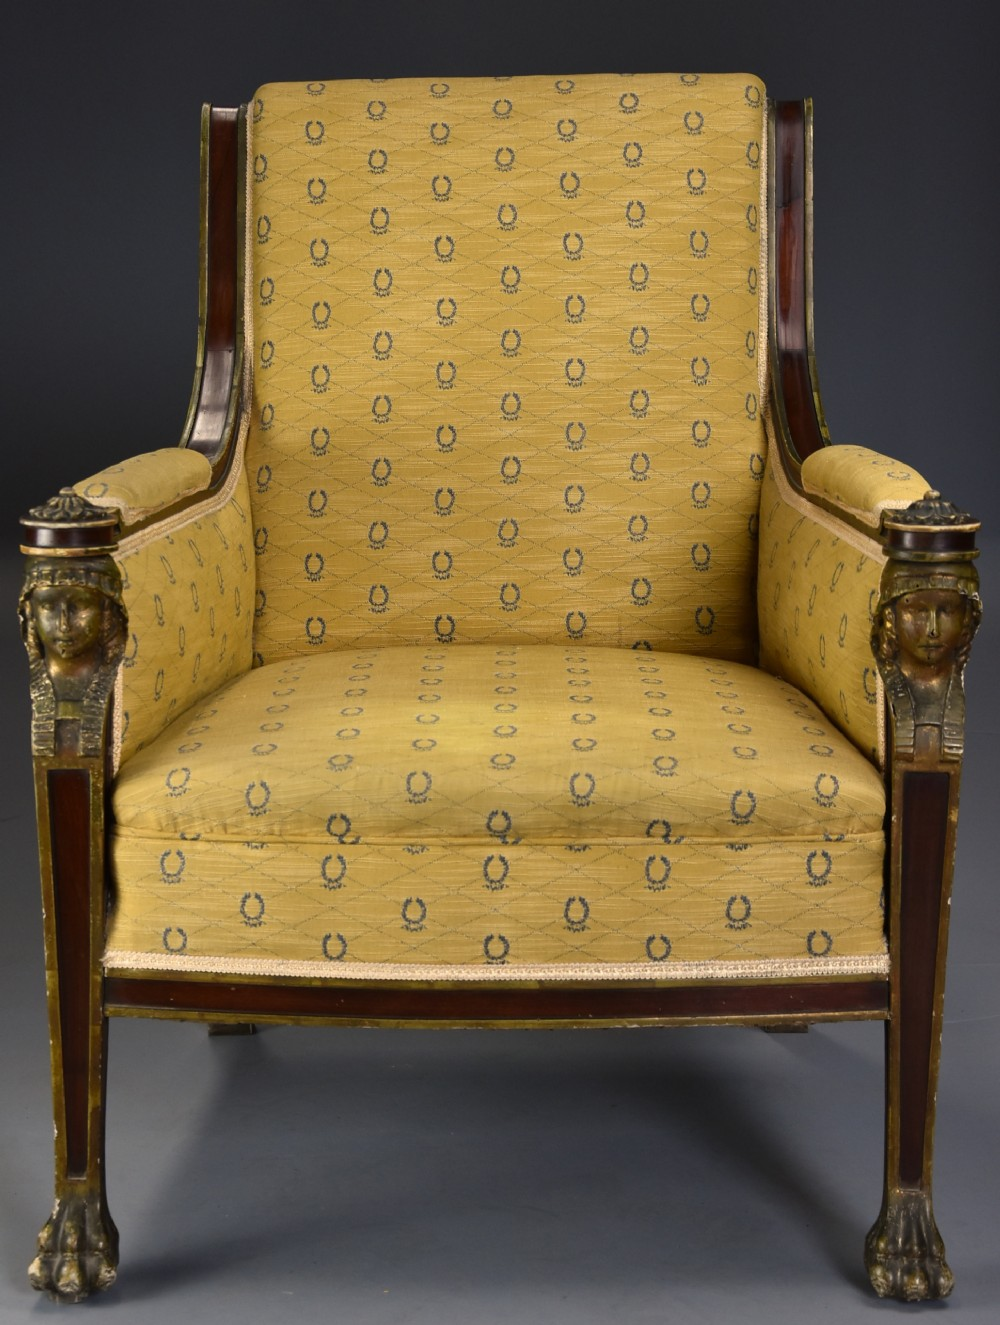 highly decorative early 20th century french empire style mahogany armchair